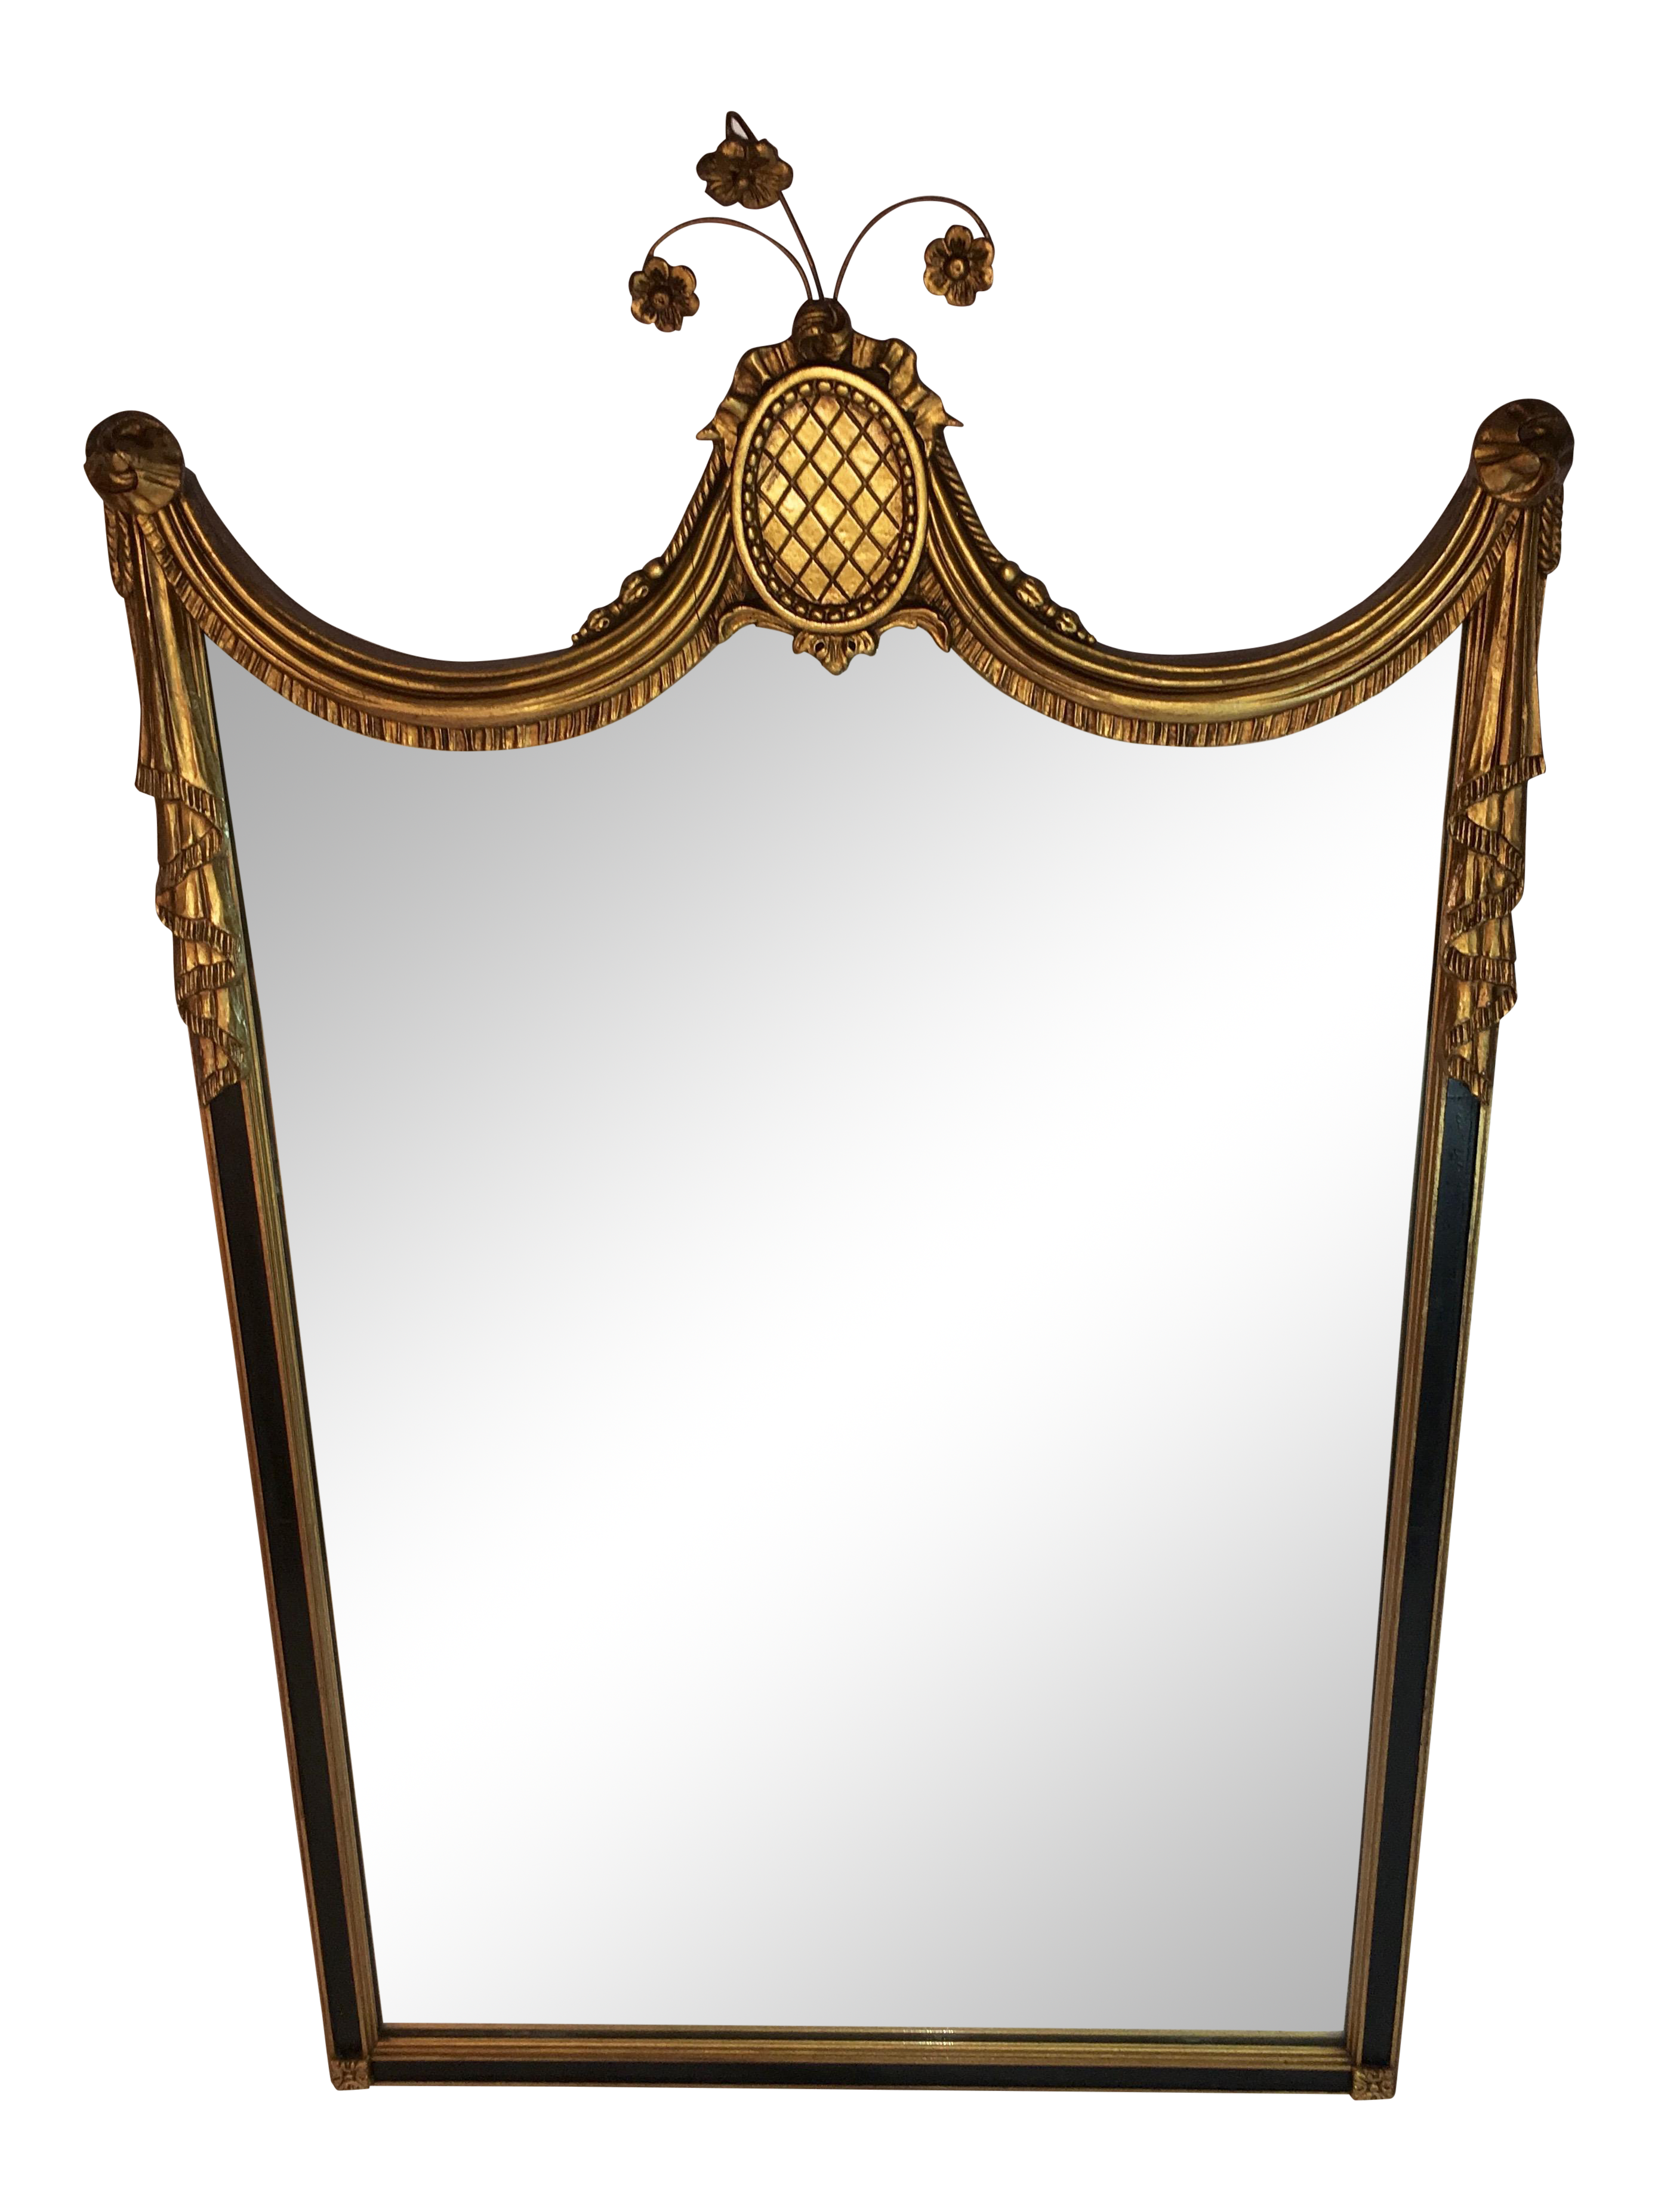 Antique art nouveau wall mirror chairish amipublicfo Image collections